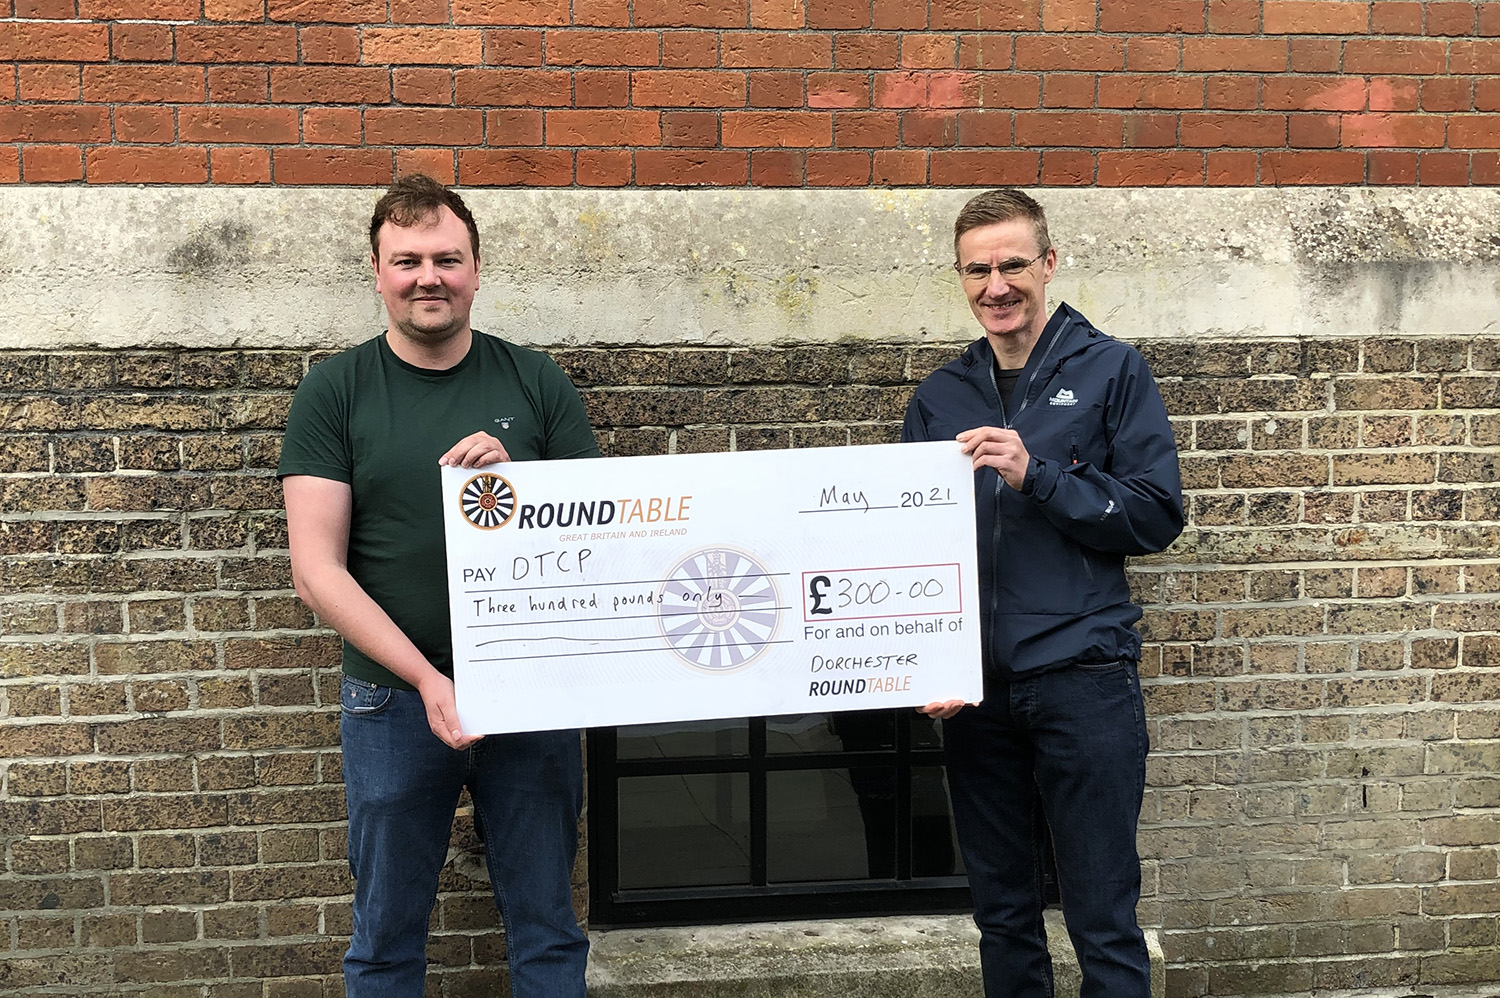 Dorchester Round Table Donation to Dorchester Trust for Counselling and Psychotherapy